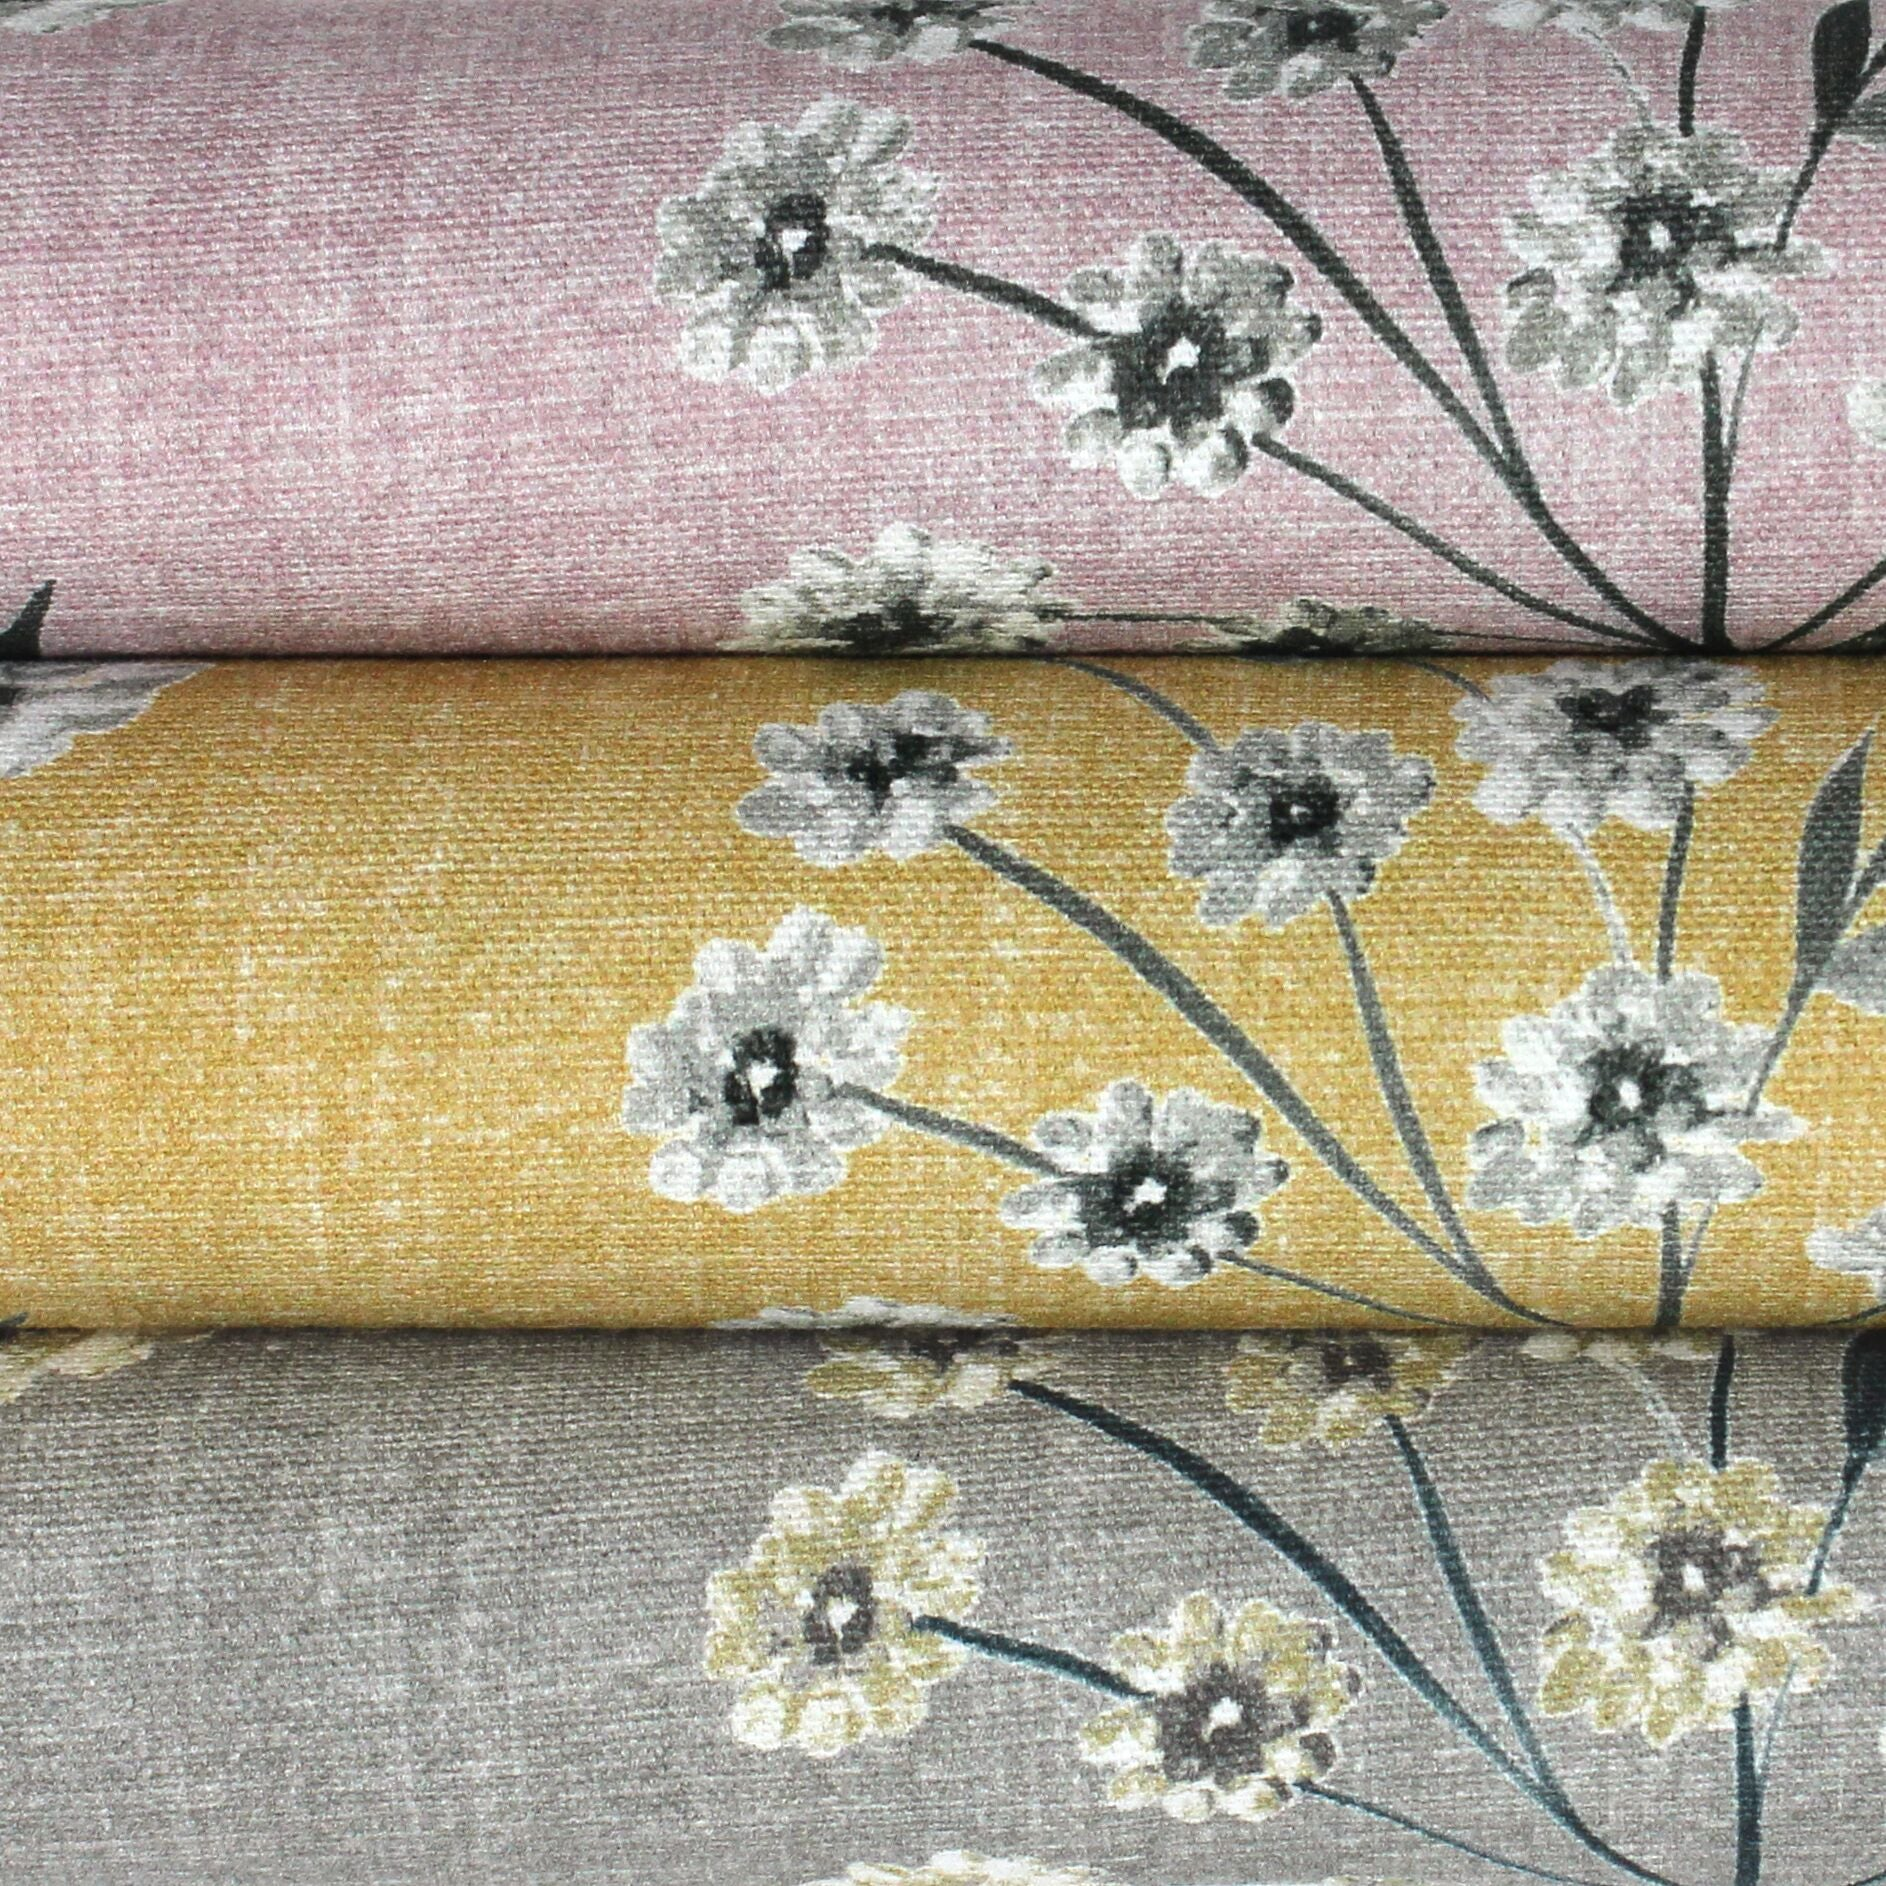 McAlister Textiles Meadow Blush Pink Floral Cotton Print Cushions Cushions and Covers